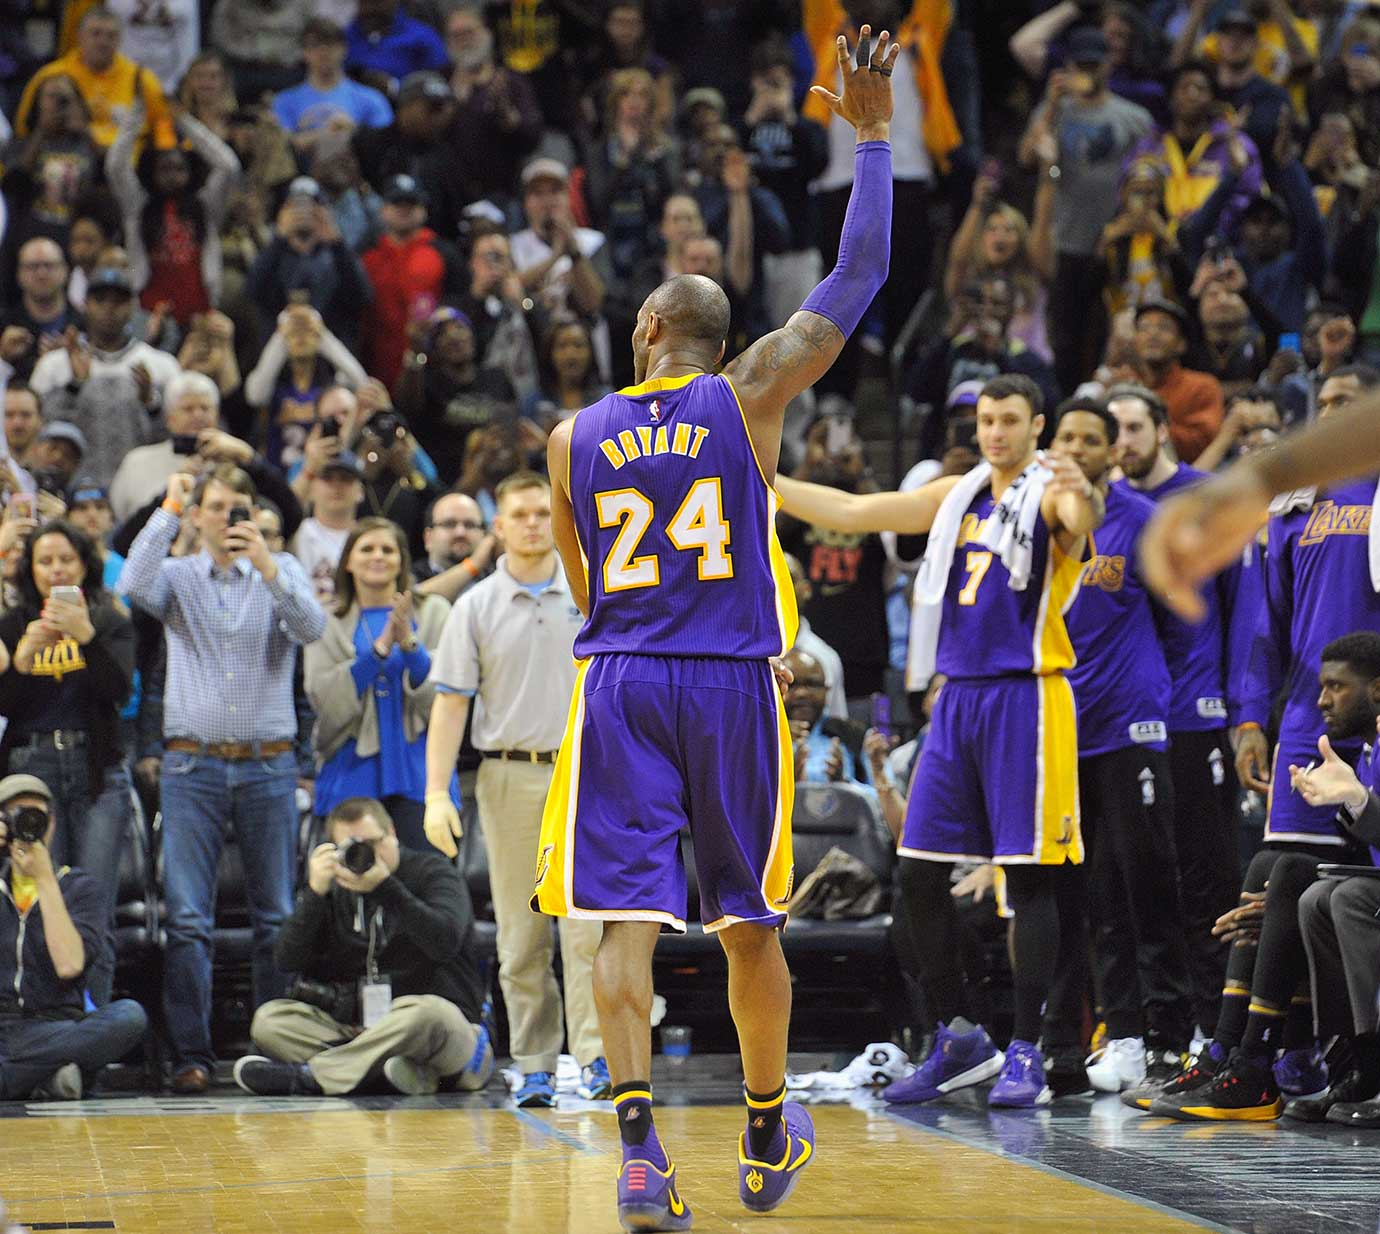 Kobe Bryant waves to fans as he leaves the court during his last game in Memphis.